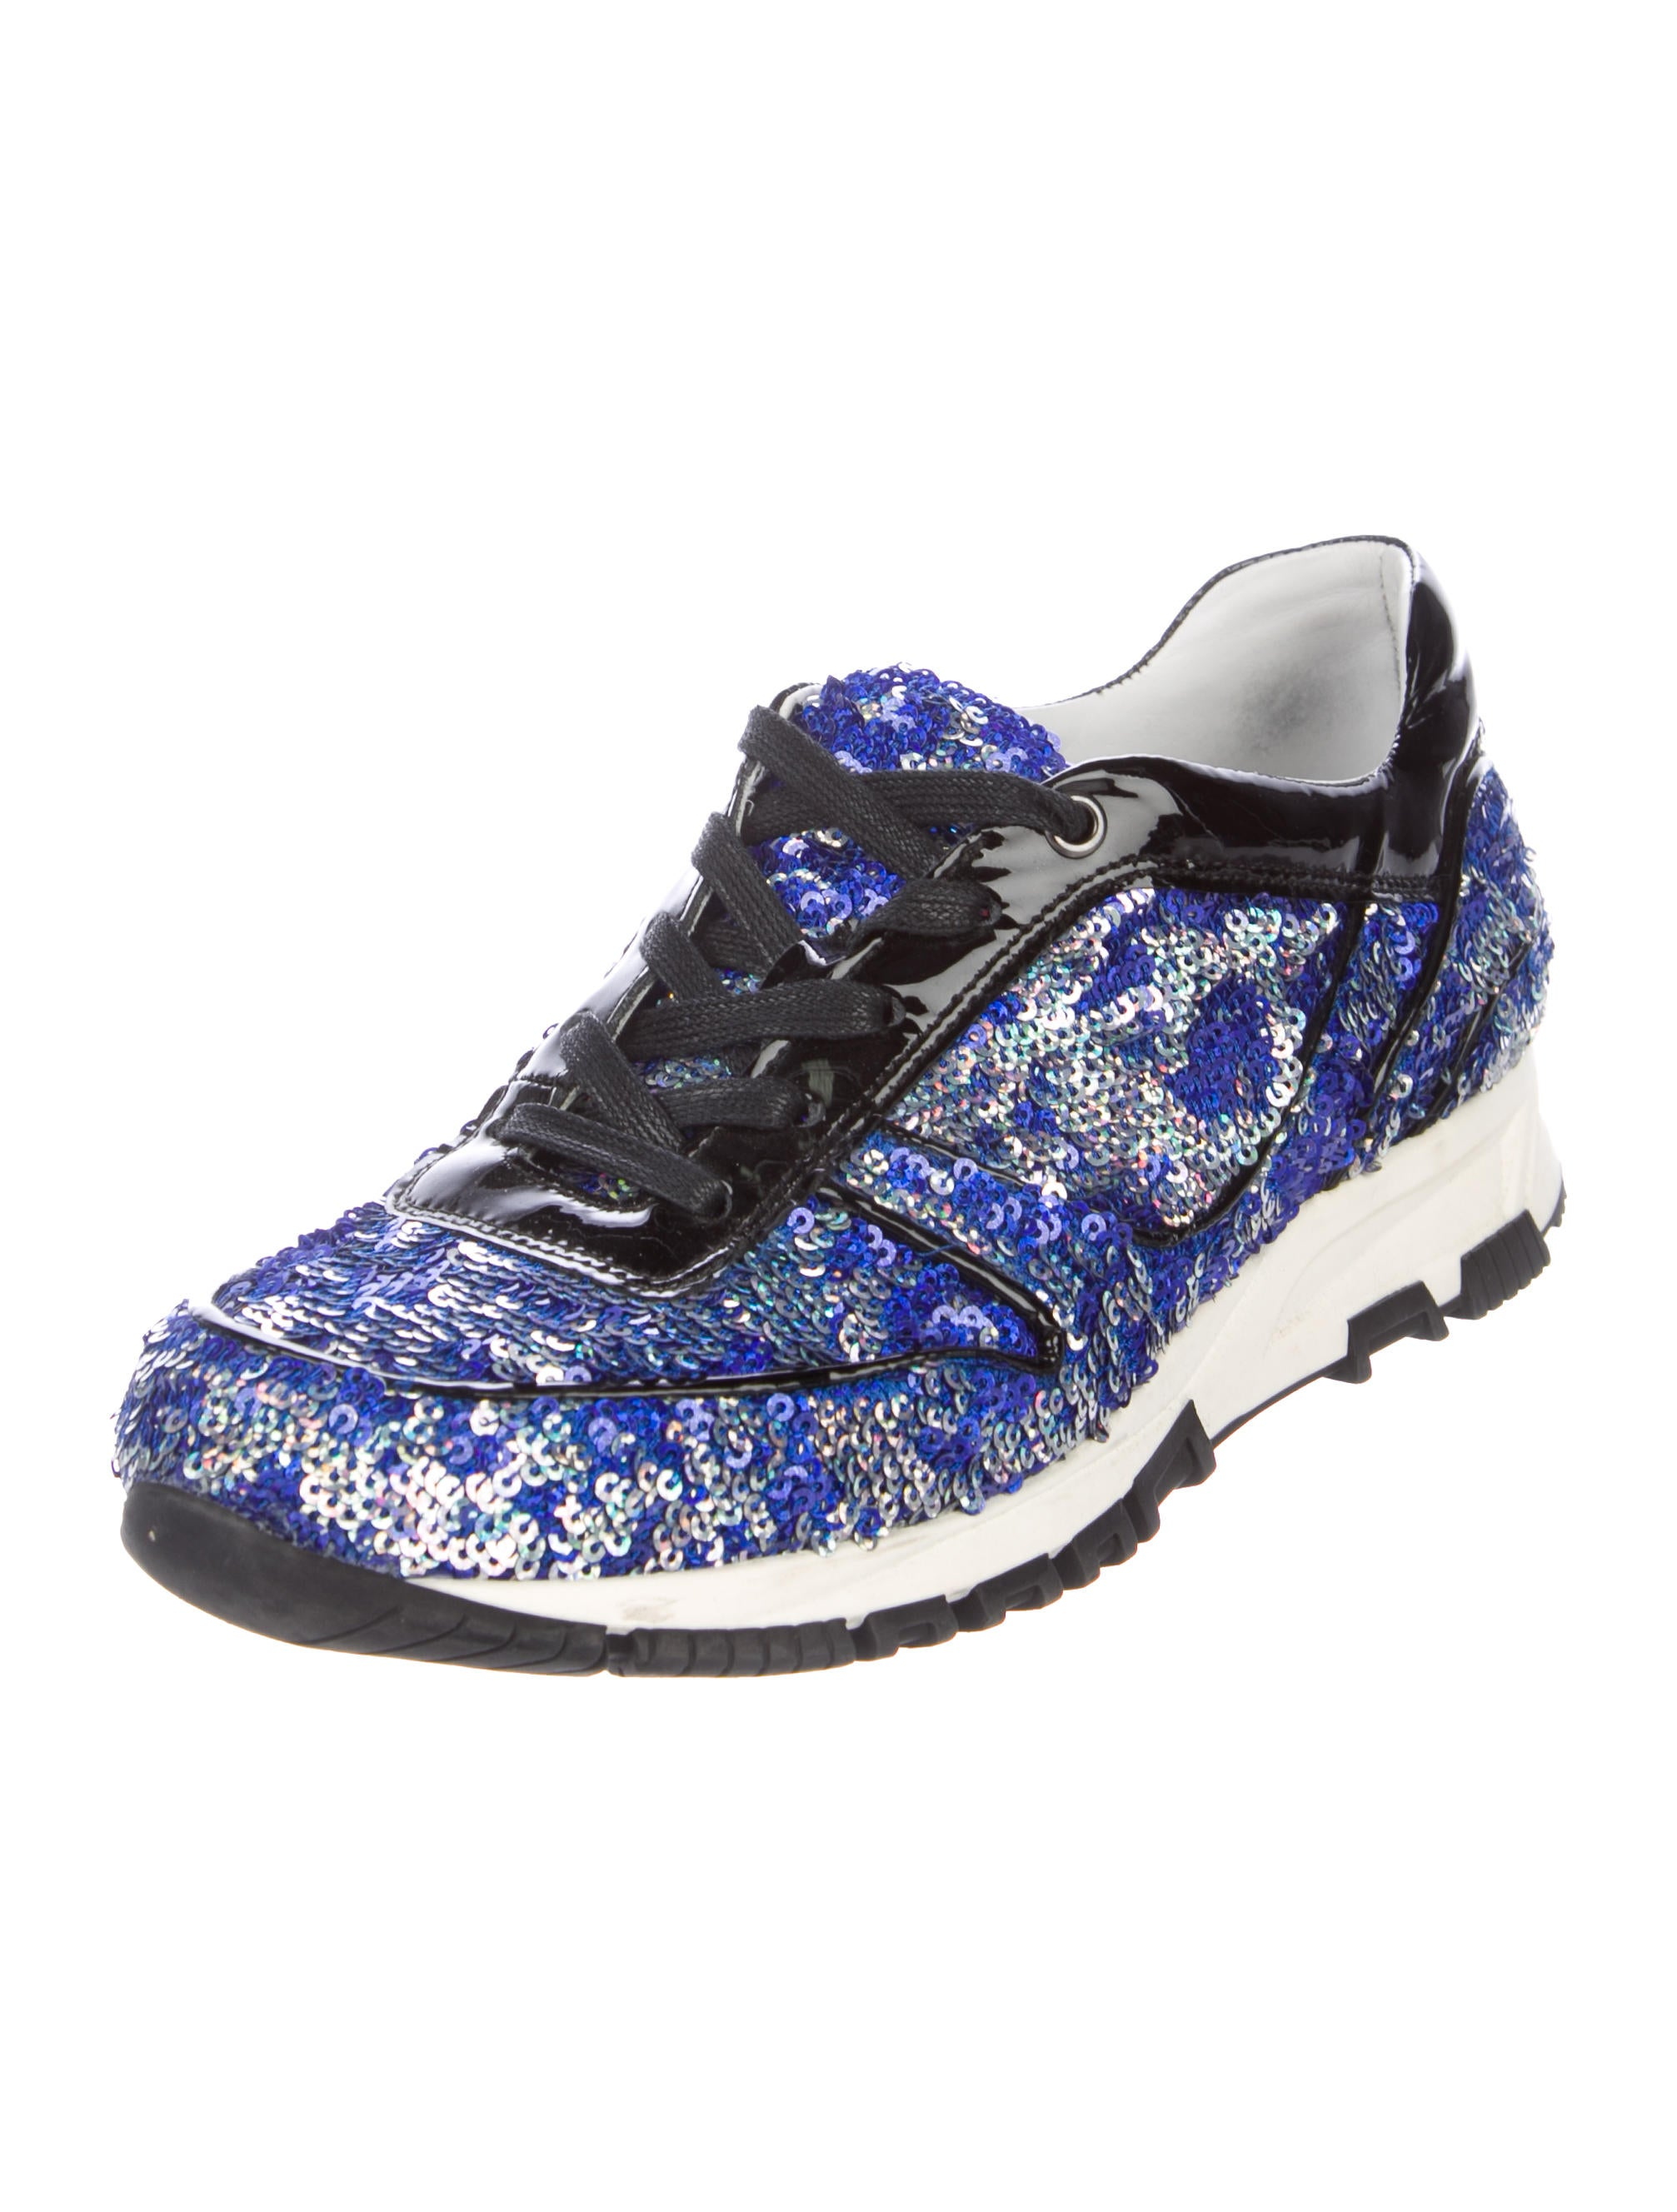 Lanvin Sequin Round-Toe Sneakers cheap sale official site pictures cheap price discount manchester great sale sale latest collections cheap low shipping fee YgL42X